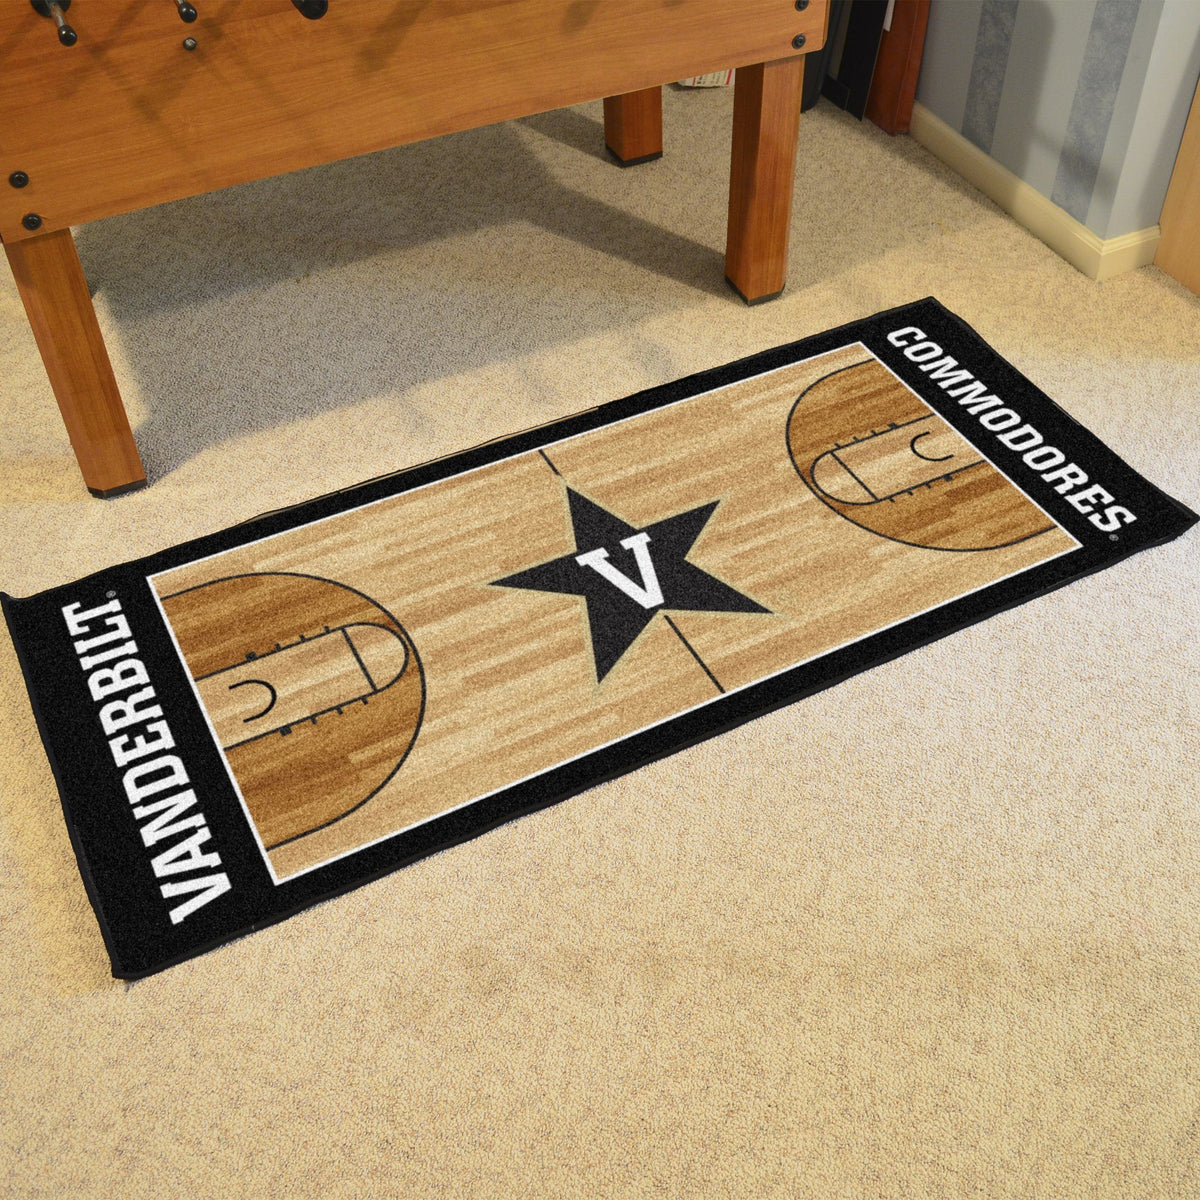 Collegiate - NCAA Basketball Runner Collegiate Mats, Rectangular Mats, NCAA Basketball Runner, Collegiate, Home Fan Mats Vanderbilt